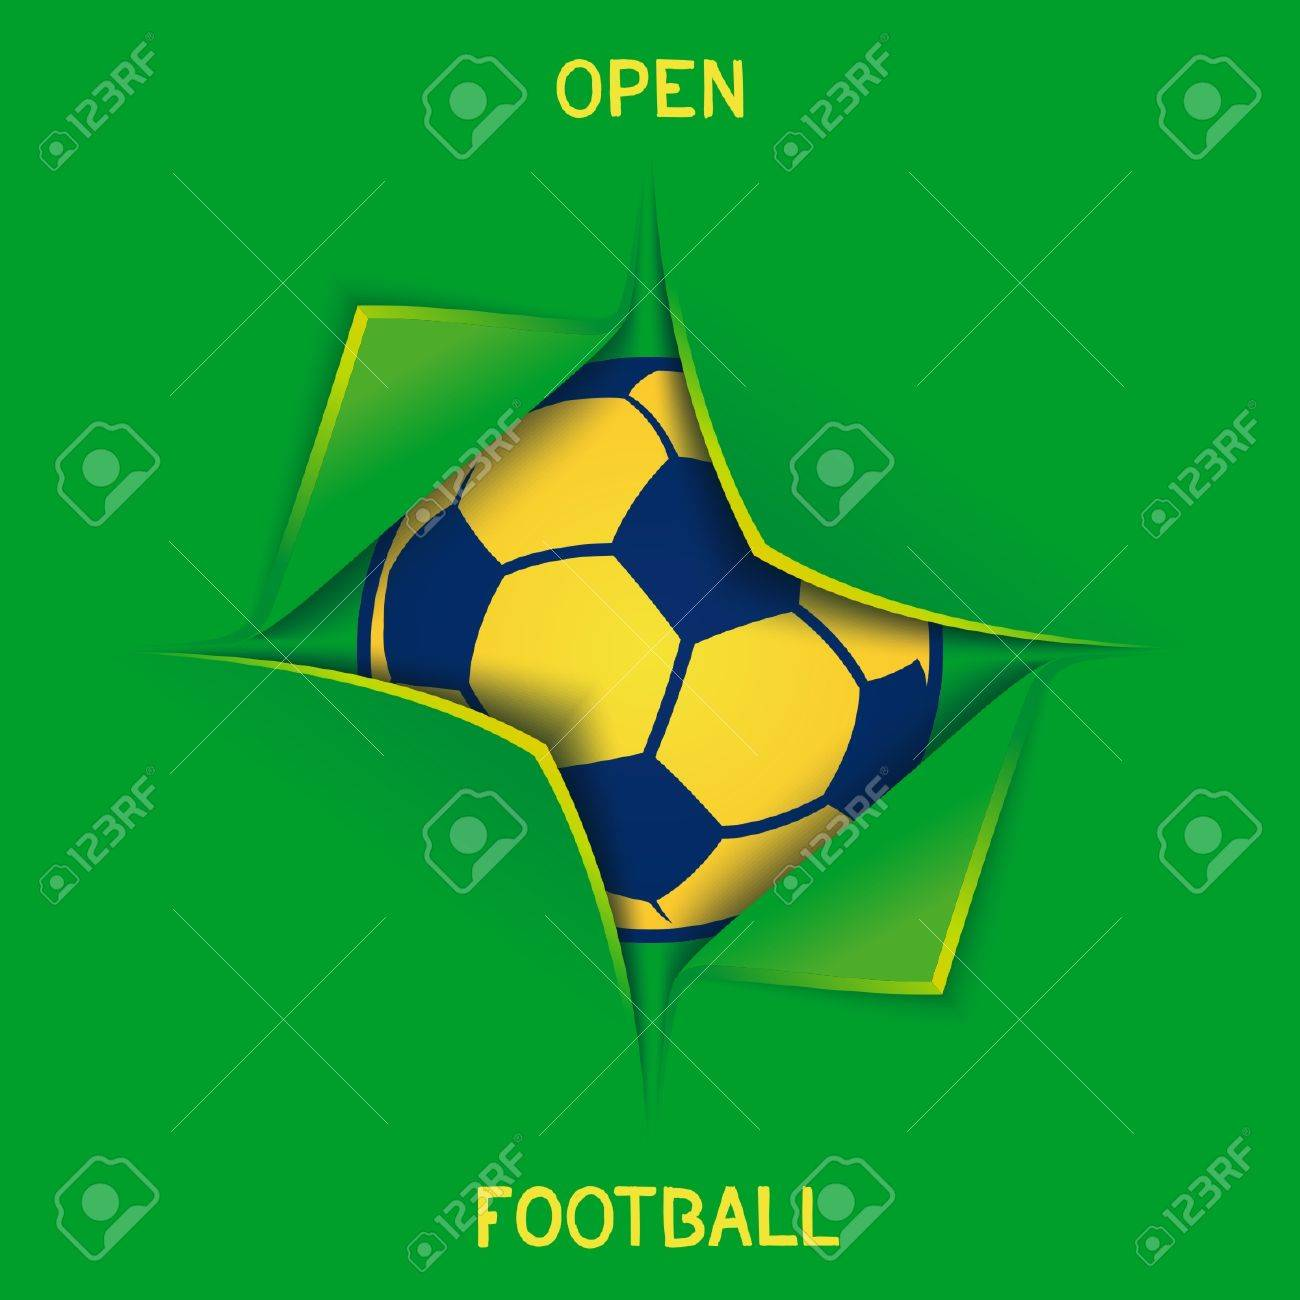 open football design 3d imitation forced open box with soccer